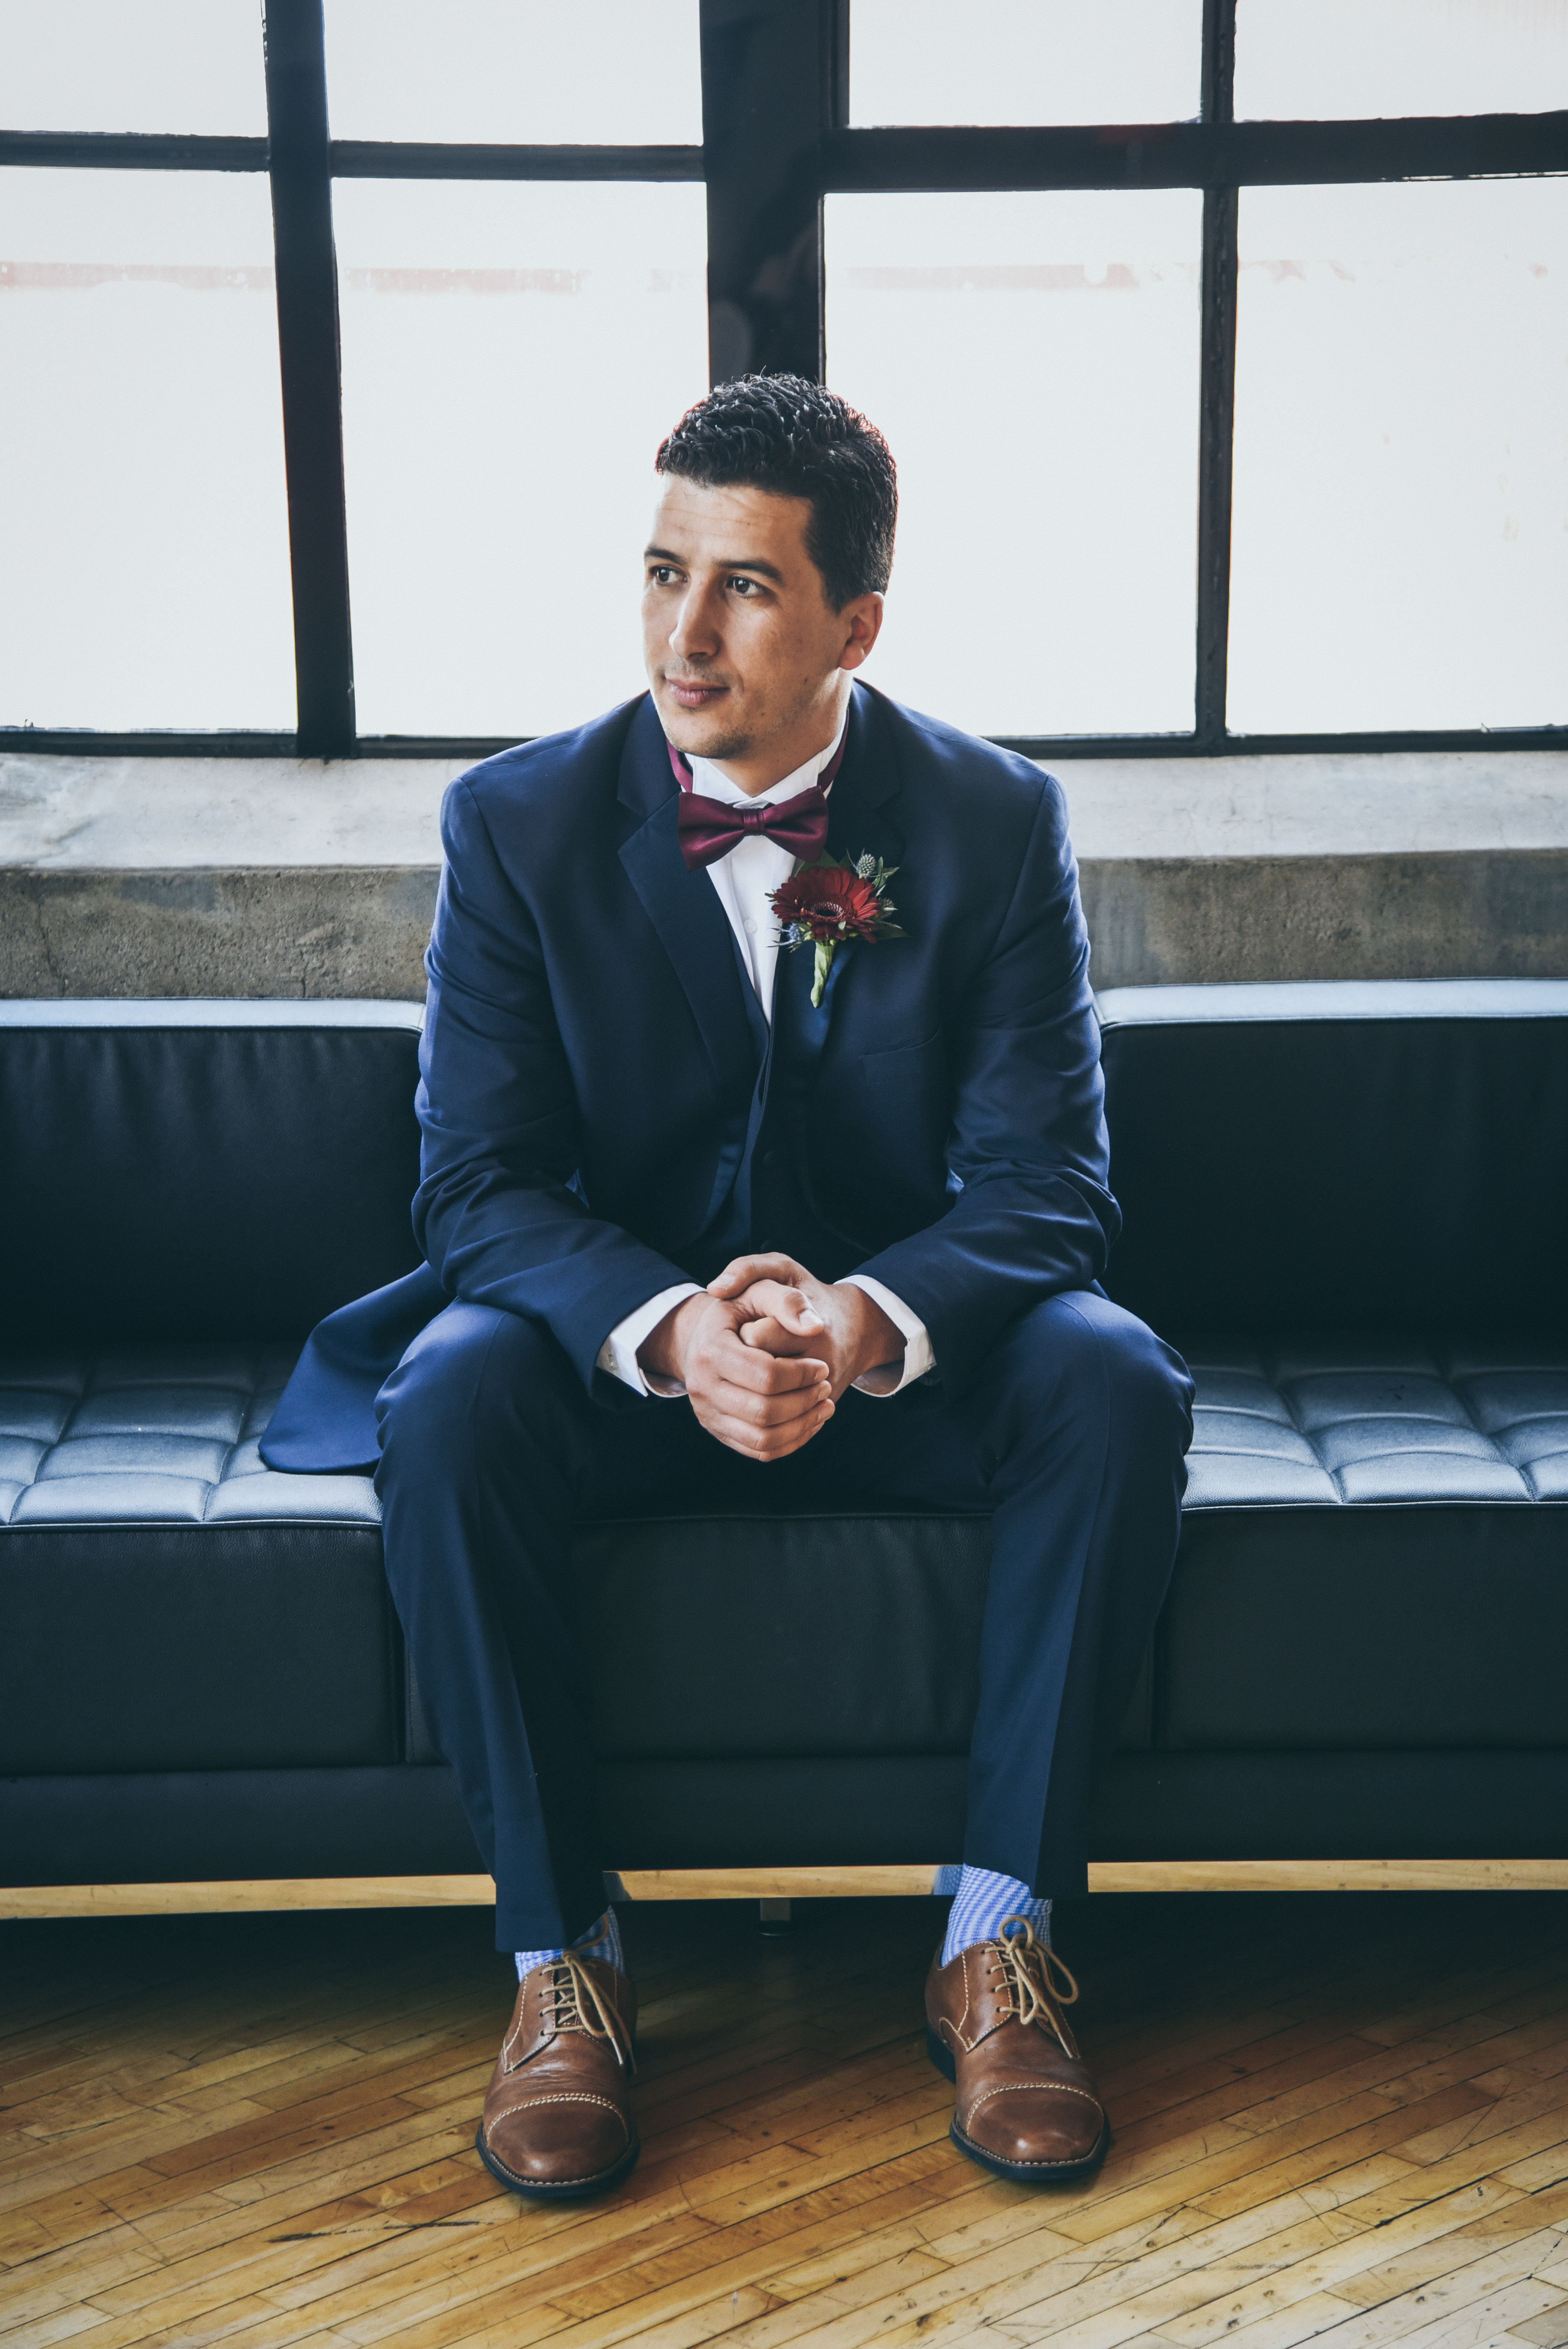 Groom in navy tux sitting on a black couch in front of a large window